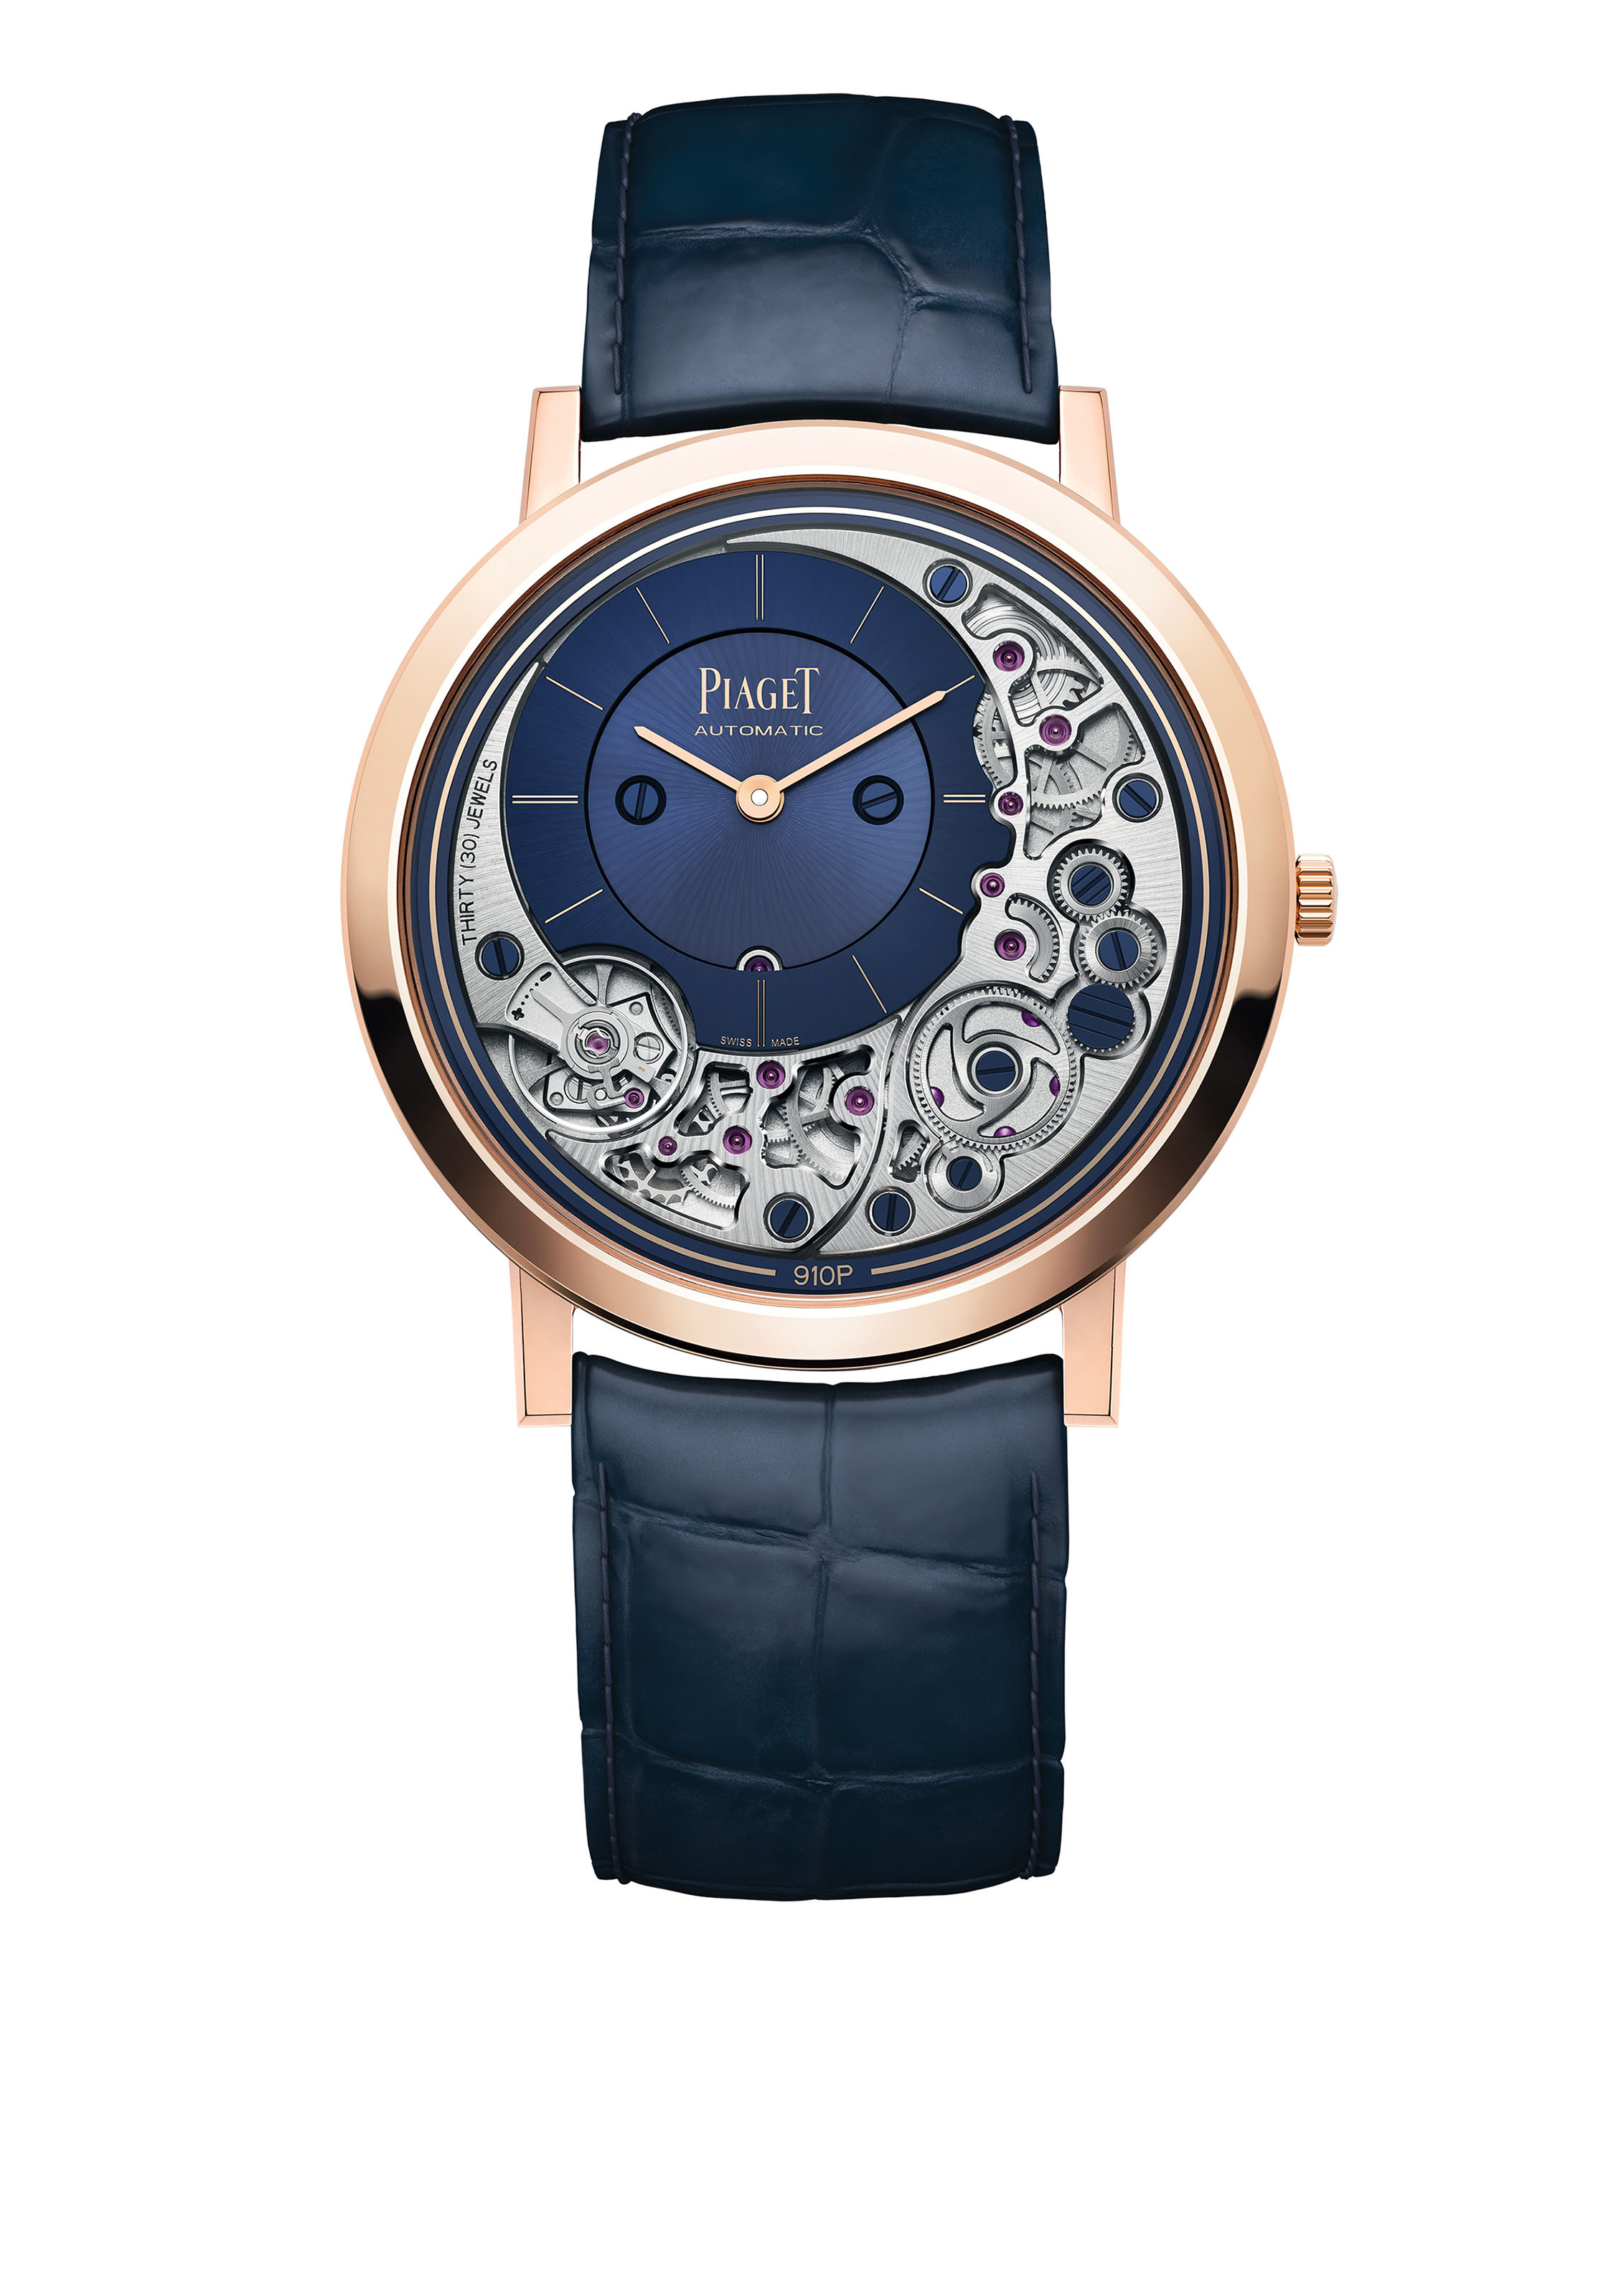 PIAGET ALTIPLANO ULTIMATE AUTOMATIC At only 4.30mm thick, the Altiplano...